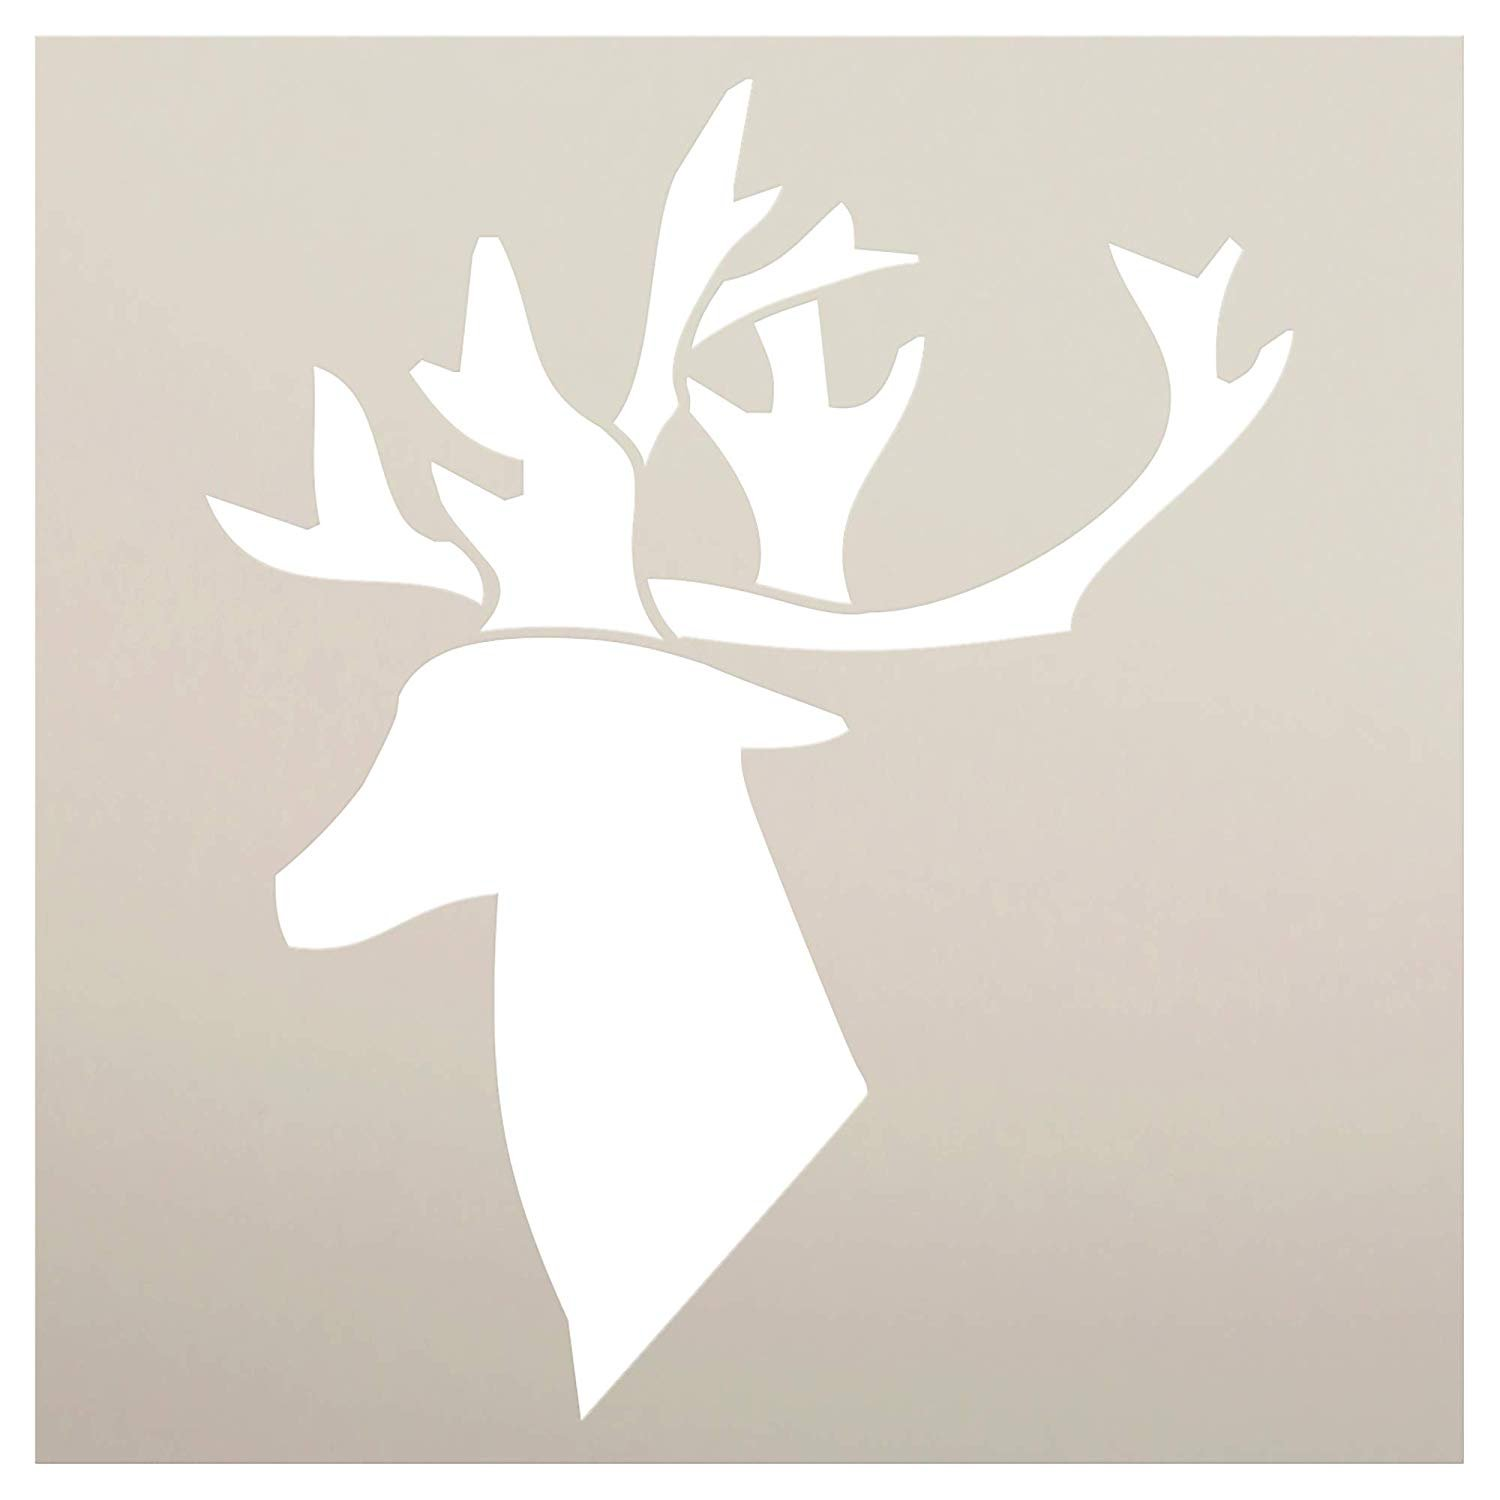 Reindeer Silhouette Stencil with Antlers by StudioR12 | DIY Holiday Home Decor | Rustic Farmhouse Christmas Wall Art | Craft & Paint Wood Signs | Reusable Mylar Template | Select Size